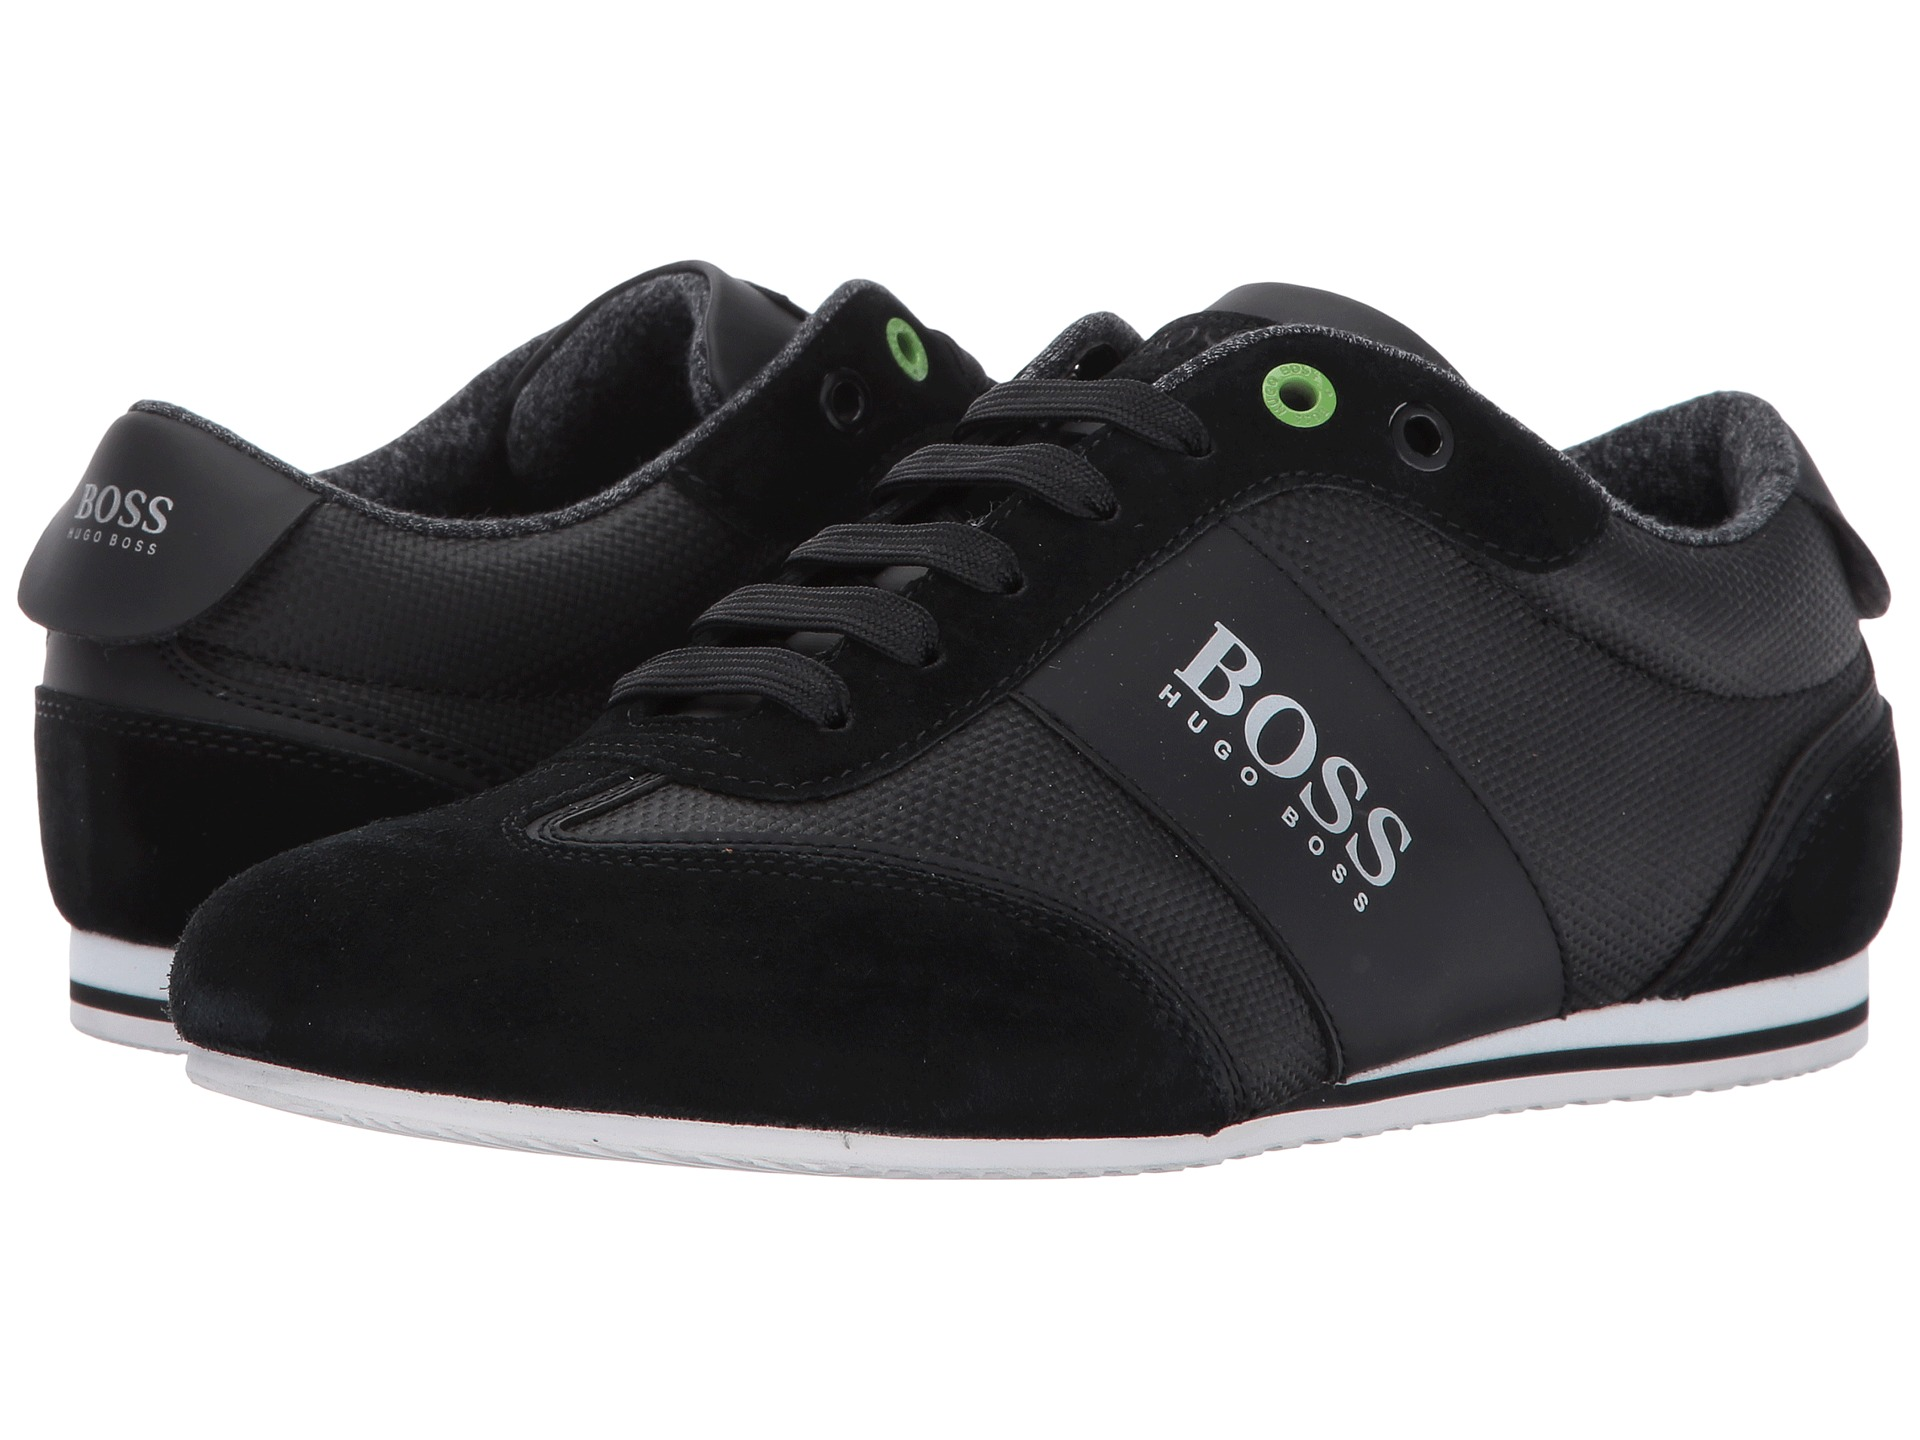 boss hugo boss lighter low coated canvas suede sneaker by boss green at. Black Bedroom Furniture Sets. Home Design Ideas